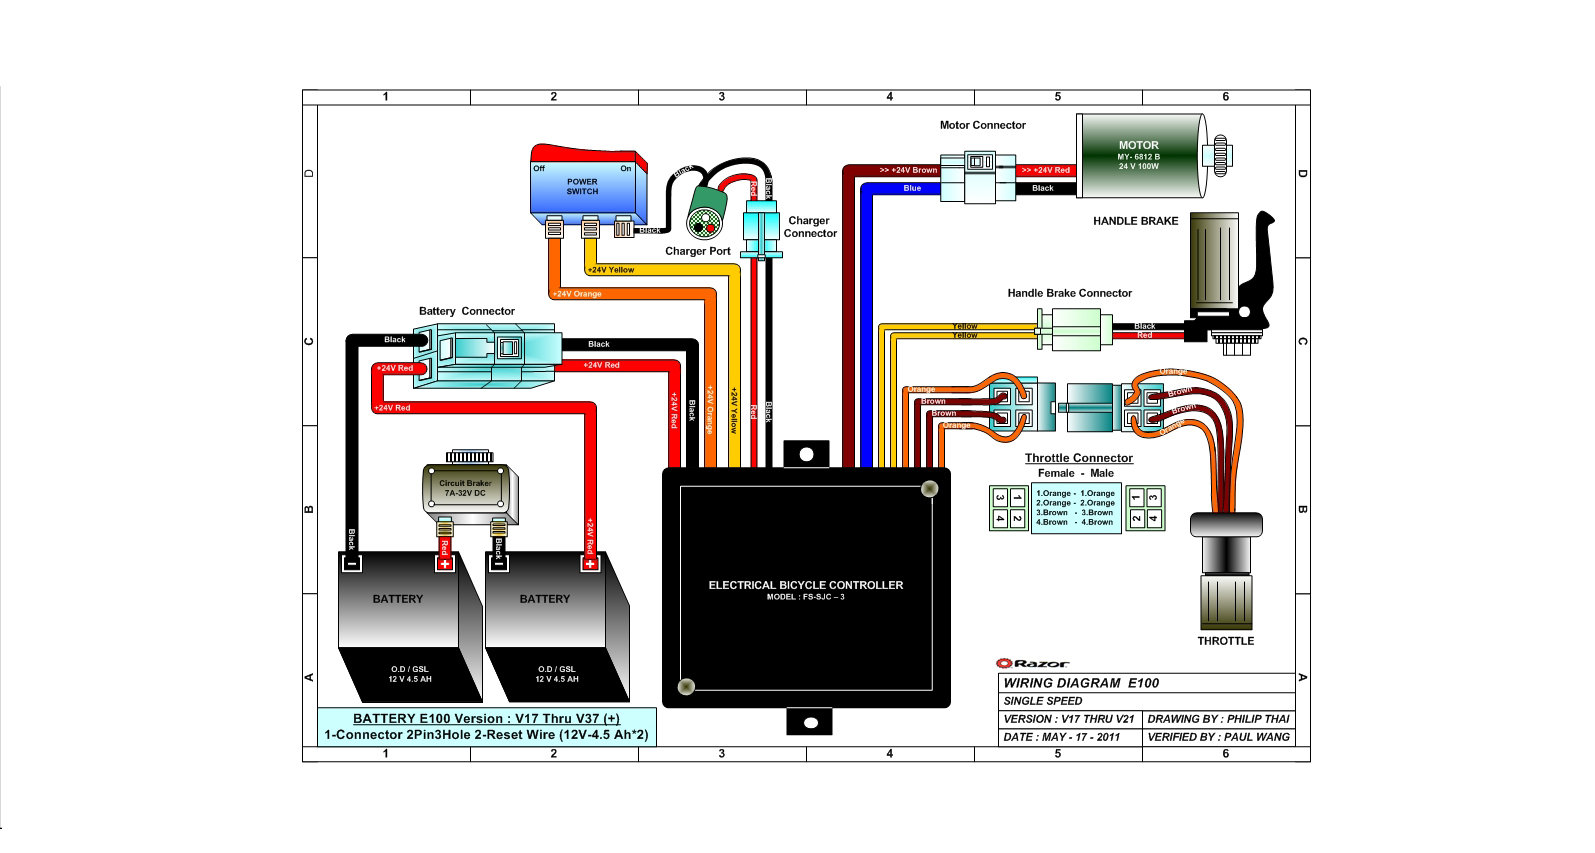 ... E100 (versions 17-21) Wiring Diagram ...